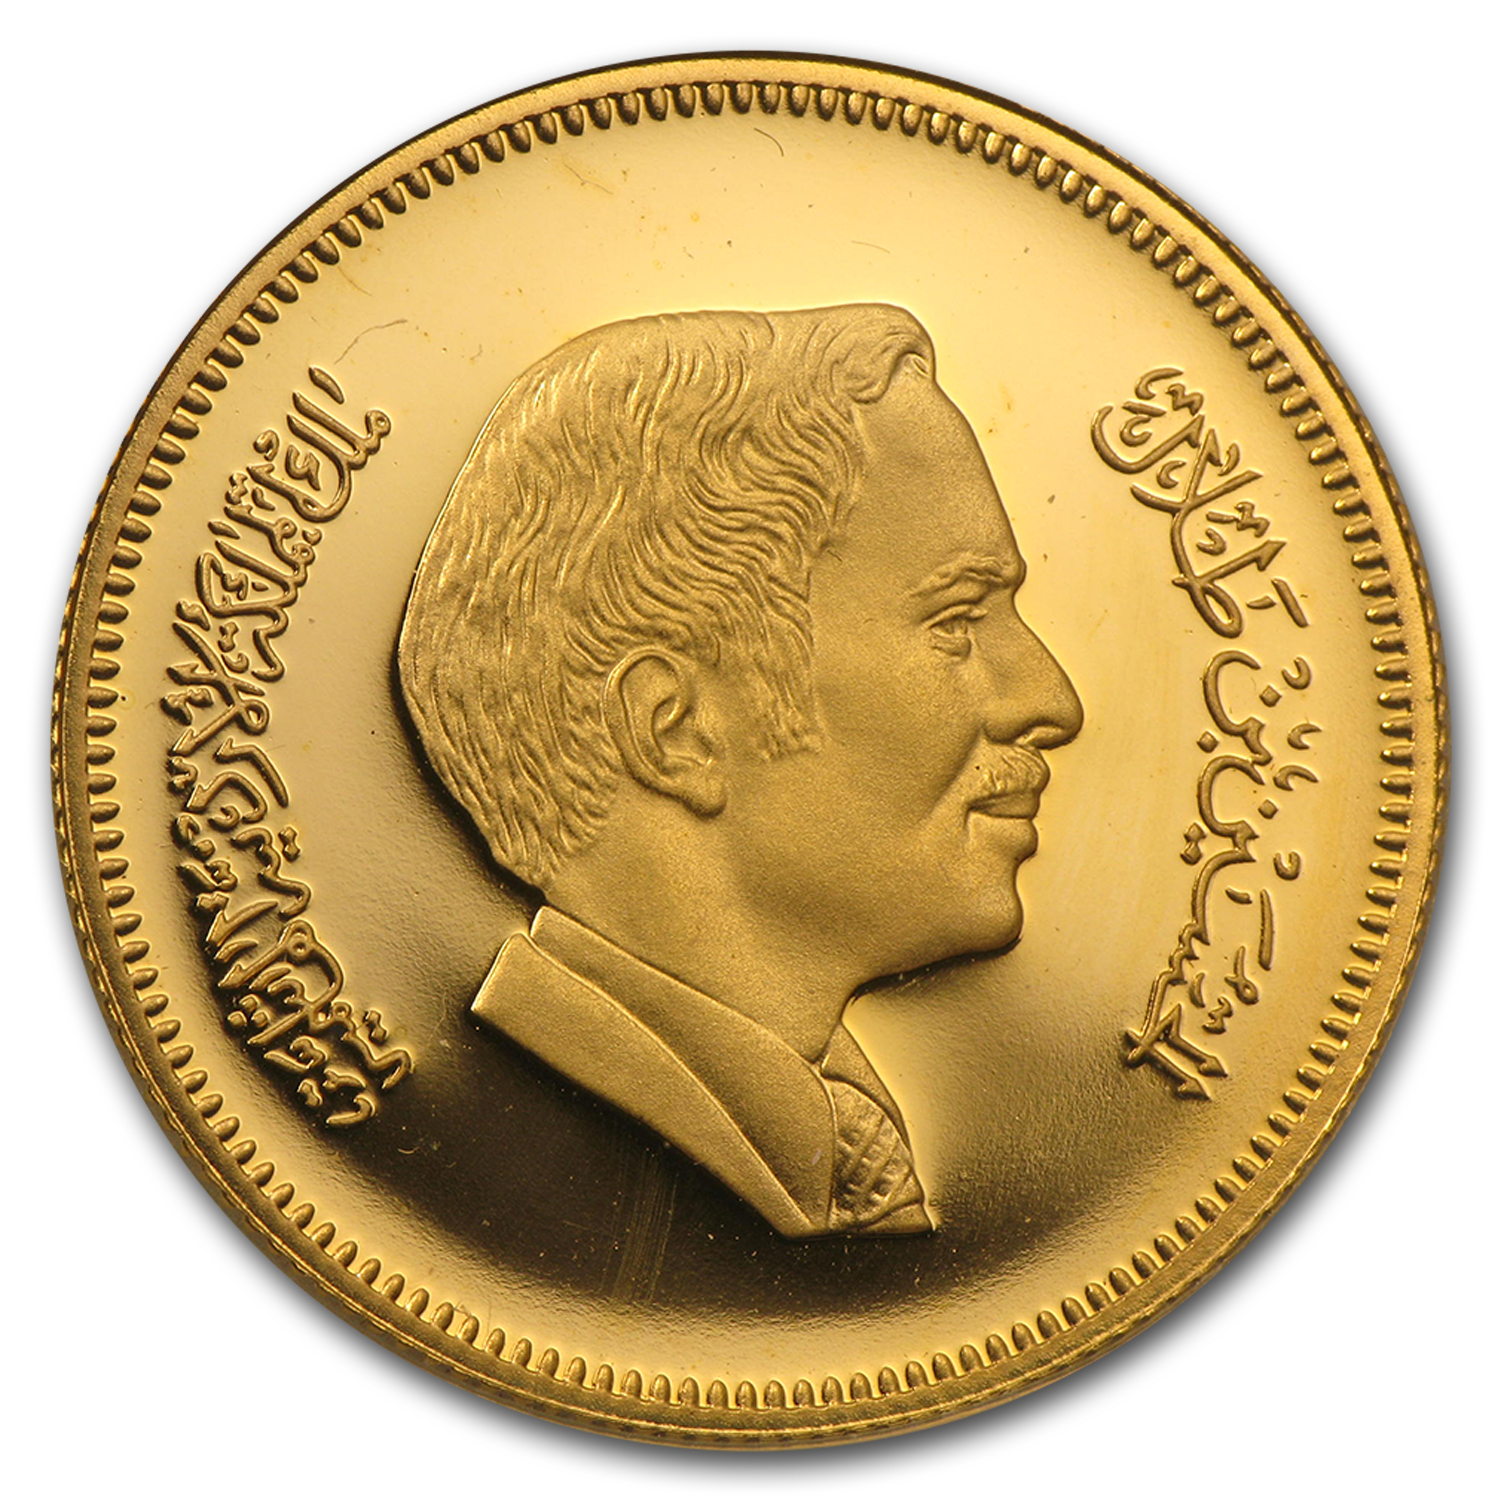 AH1401-1981 Jordan Proof Gold 60 Dinars